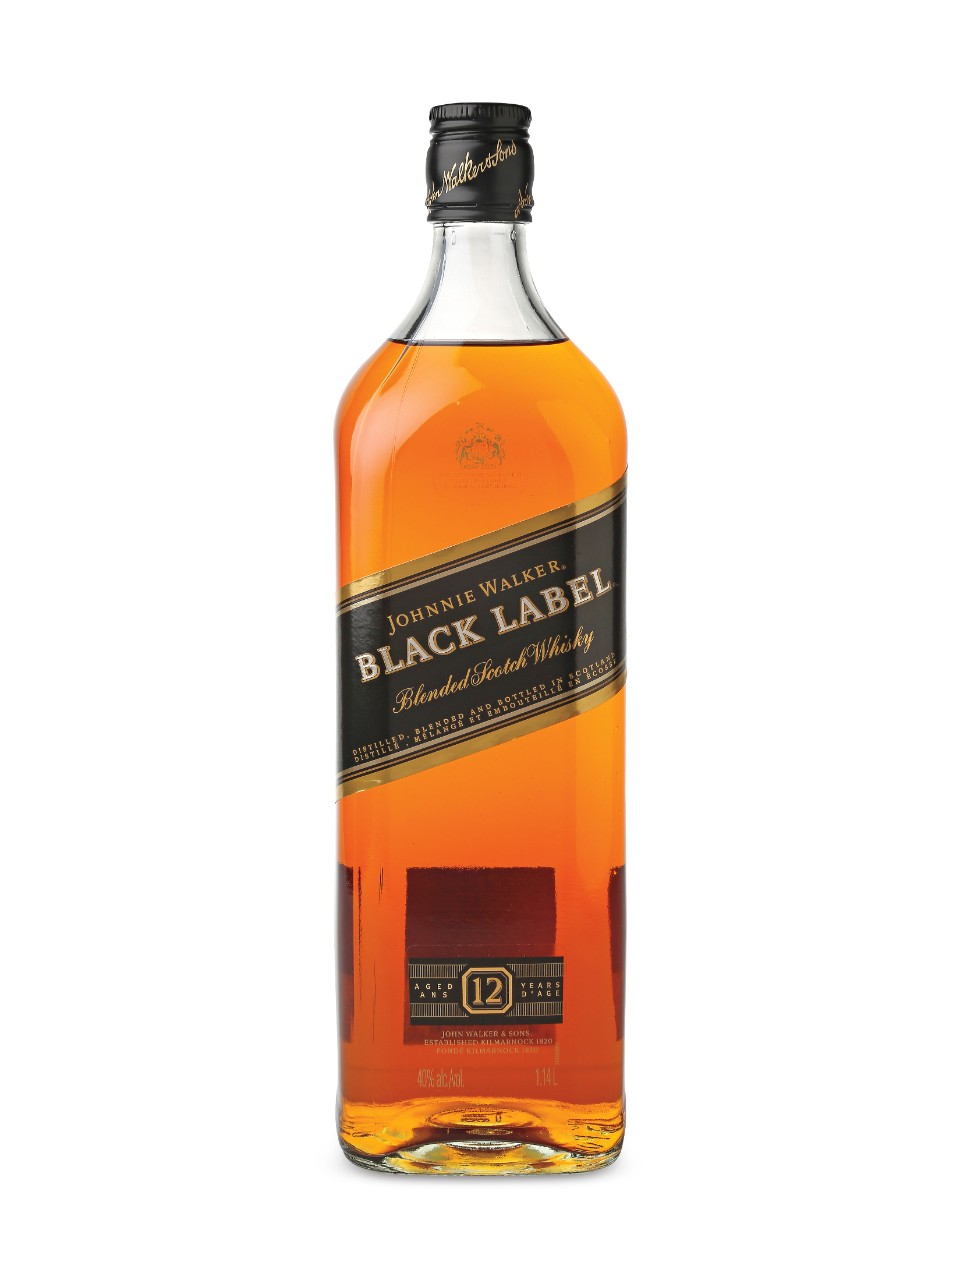 It's just an image of Bewitching Black Label Red Label Difference